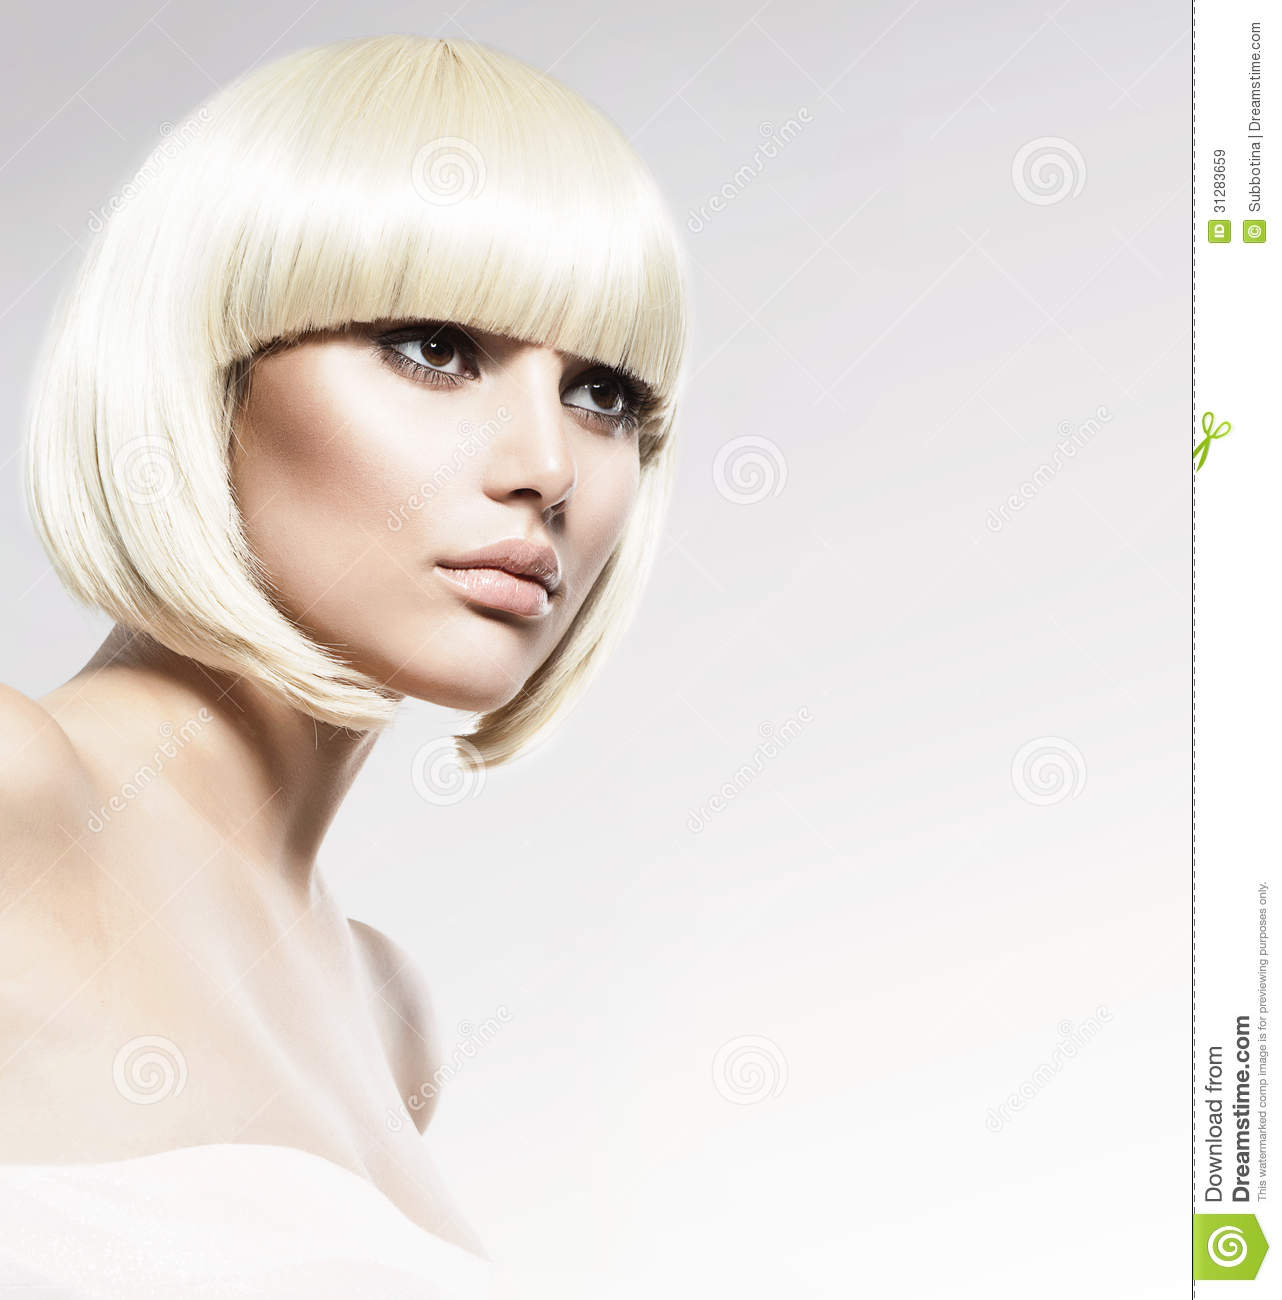 Vogue Style Model Portrait Stock Image. Image Of Brown